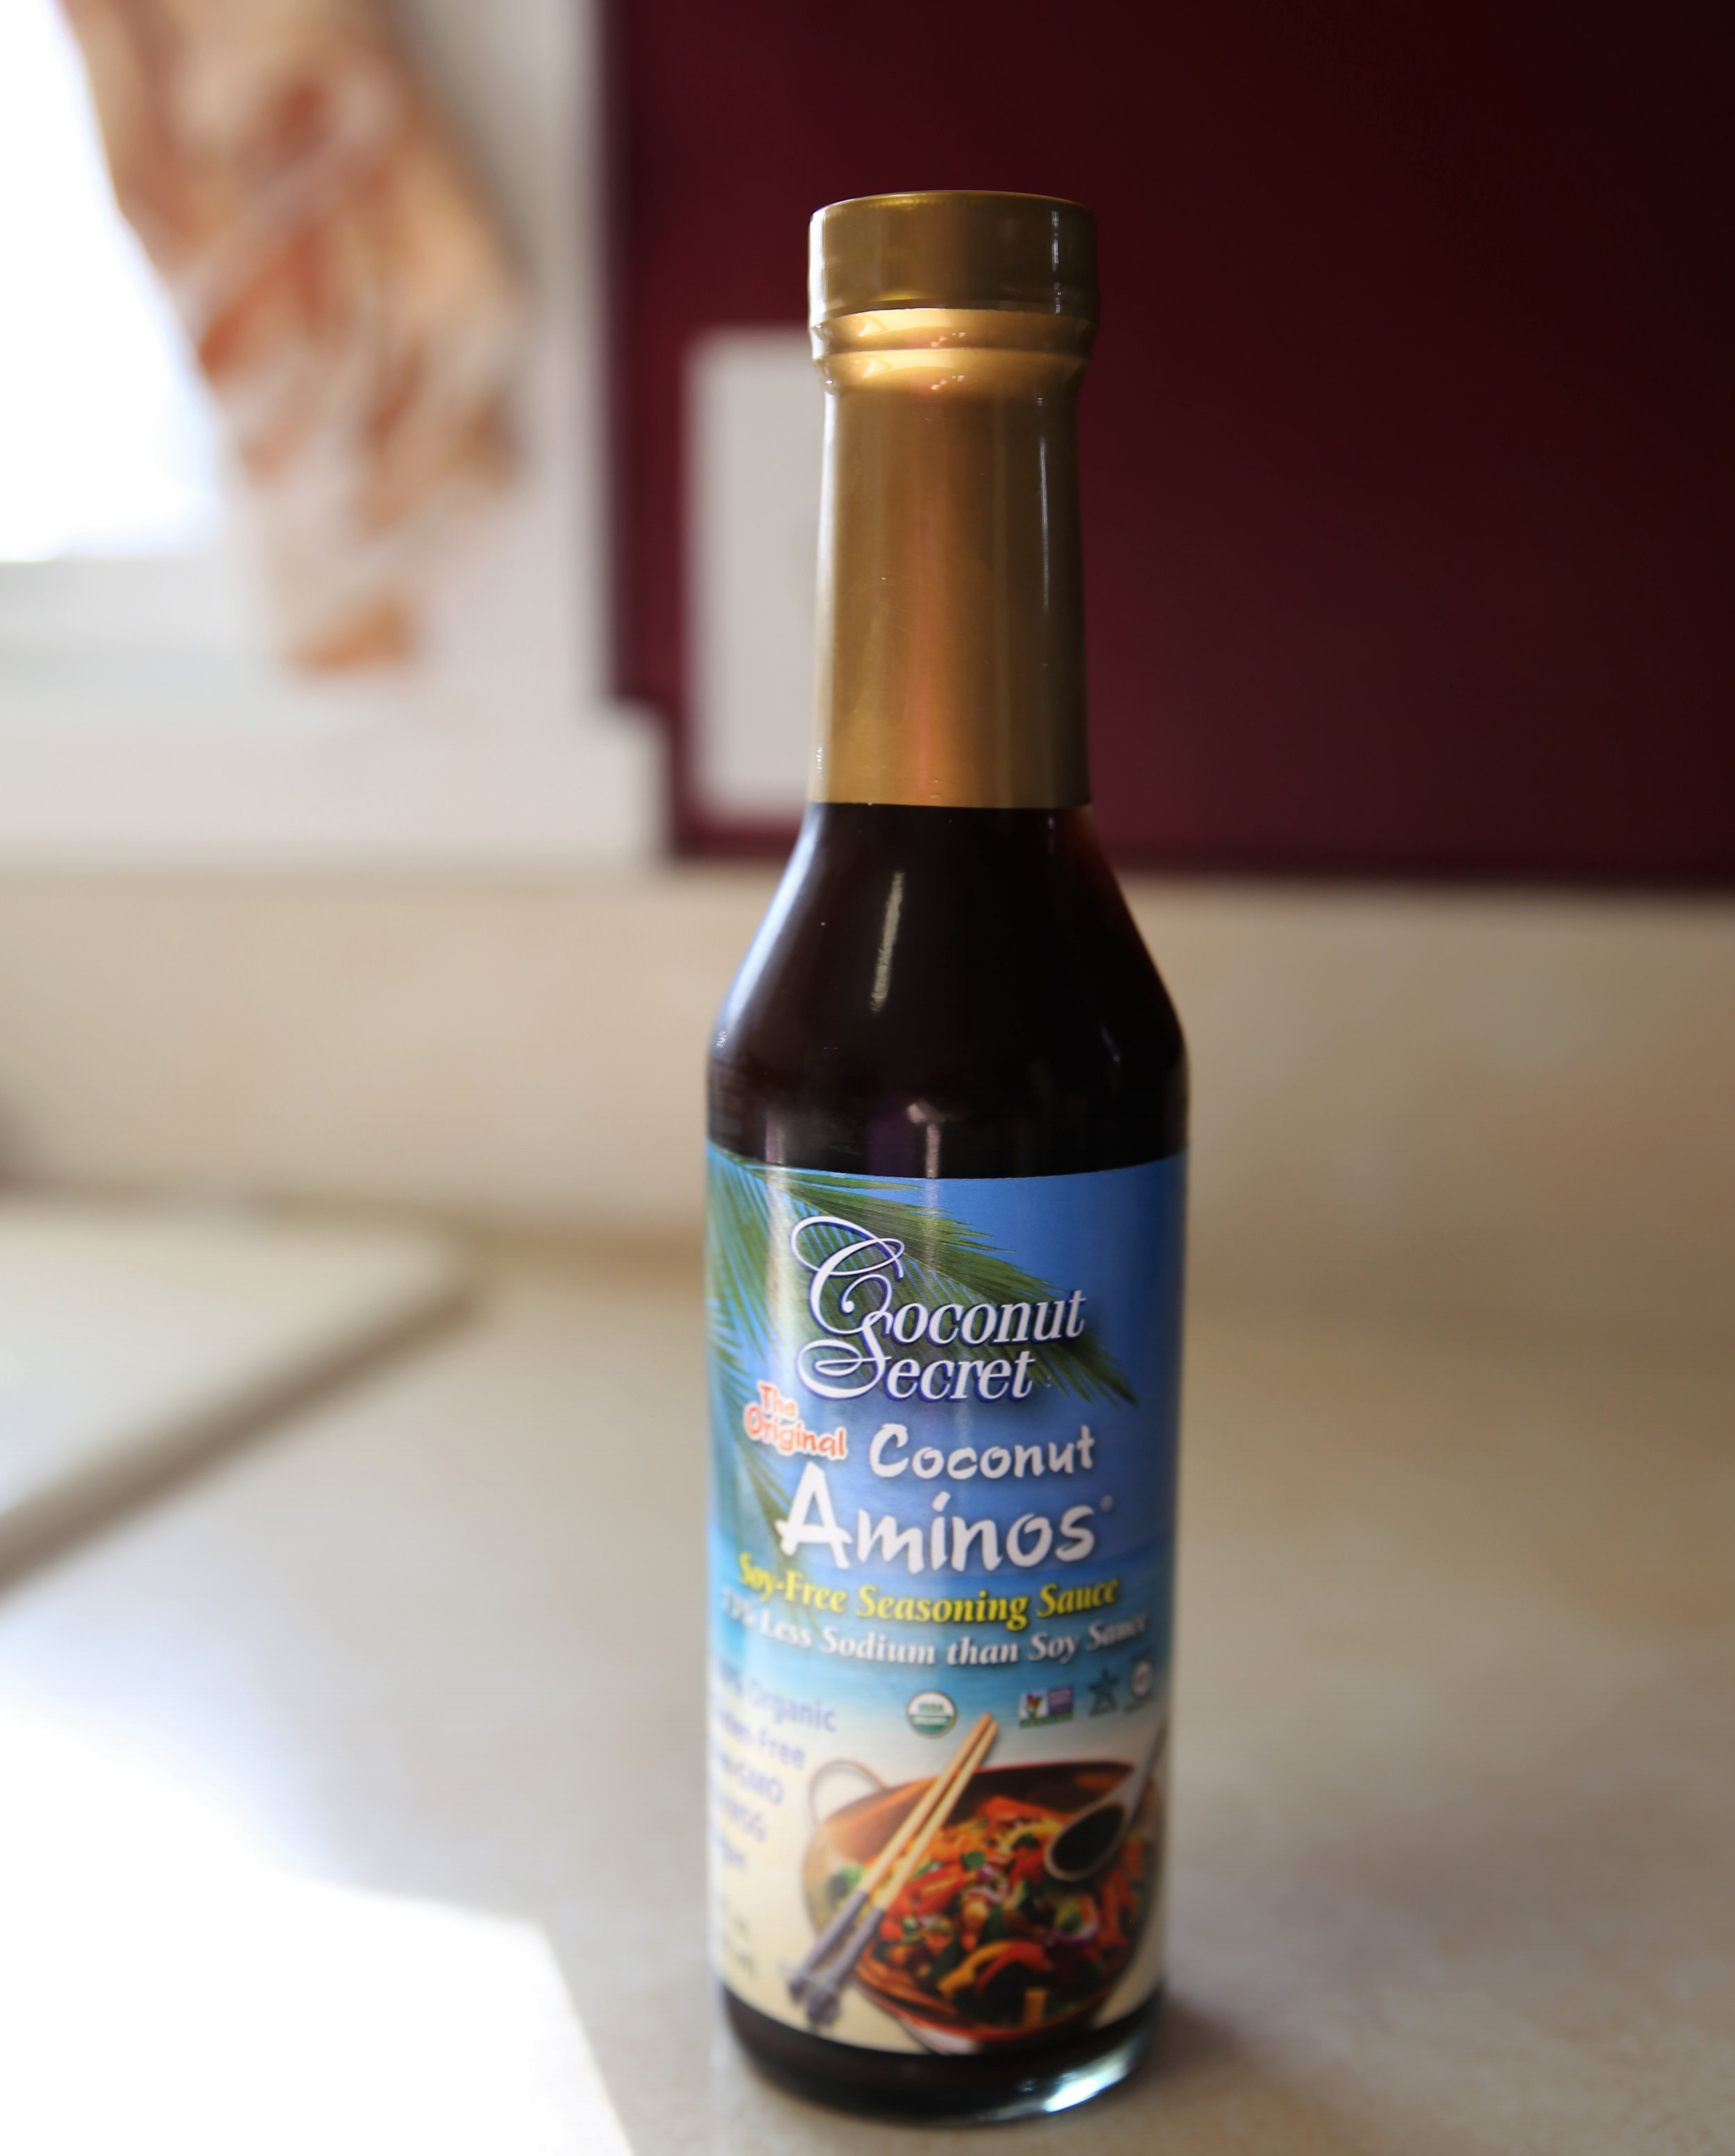 Coconut Aminos - Excellent alternative to soy sauce! Tastes great in stir-frys and marinates. Best price on Thrive Market online, also available on Amazon or ate Whole Foods and Fresh Thyme.